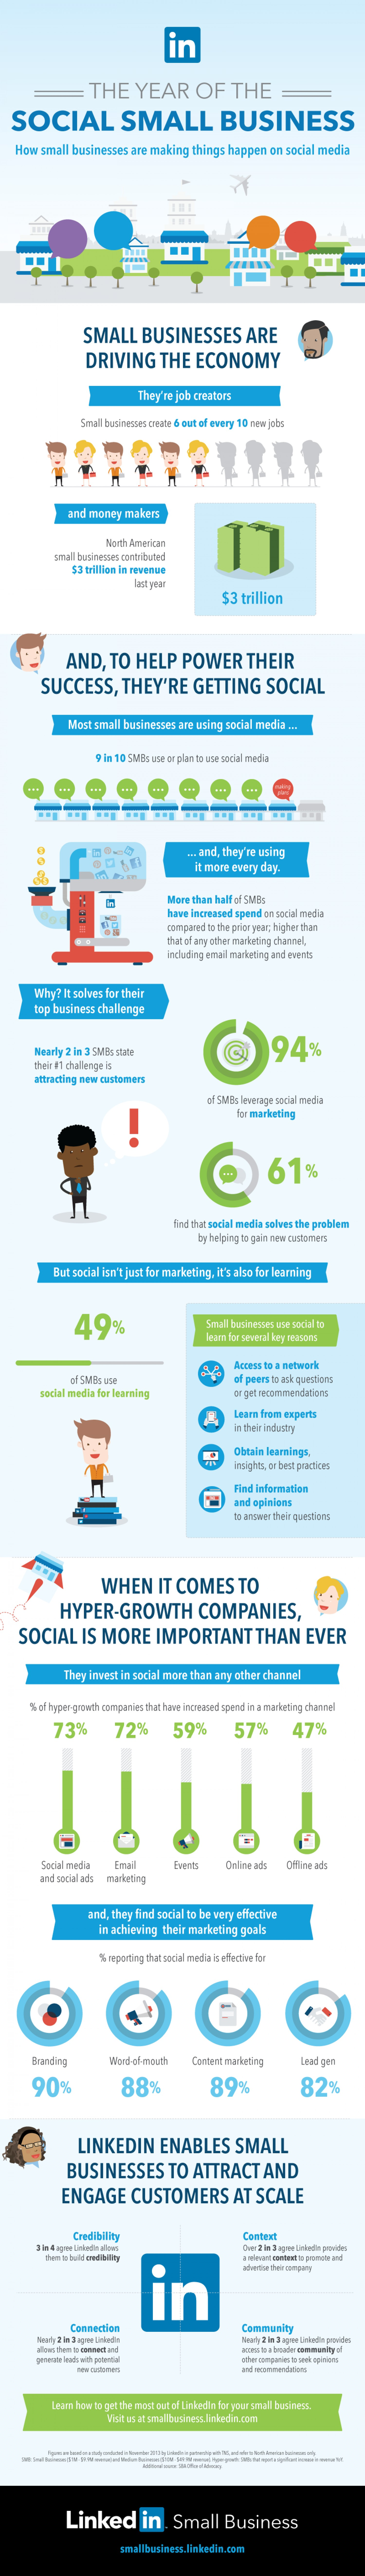 The Year Of The Social Small Business Social Media Infographic Small Business Infographic Small Business Social Media